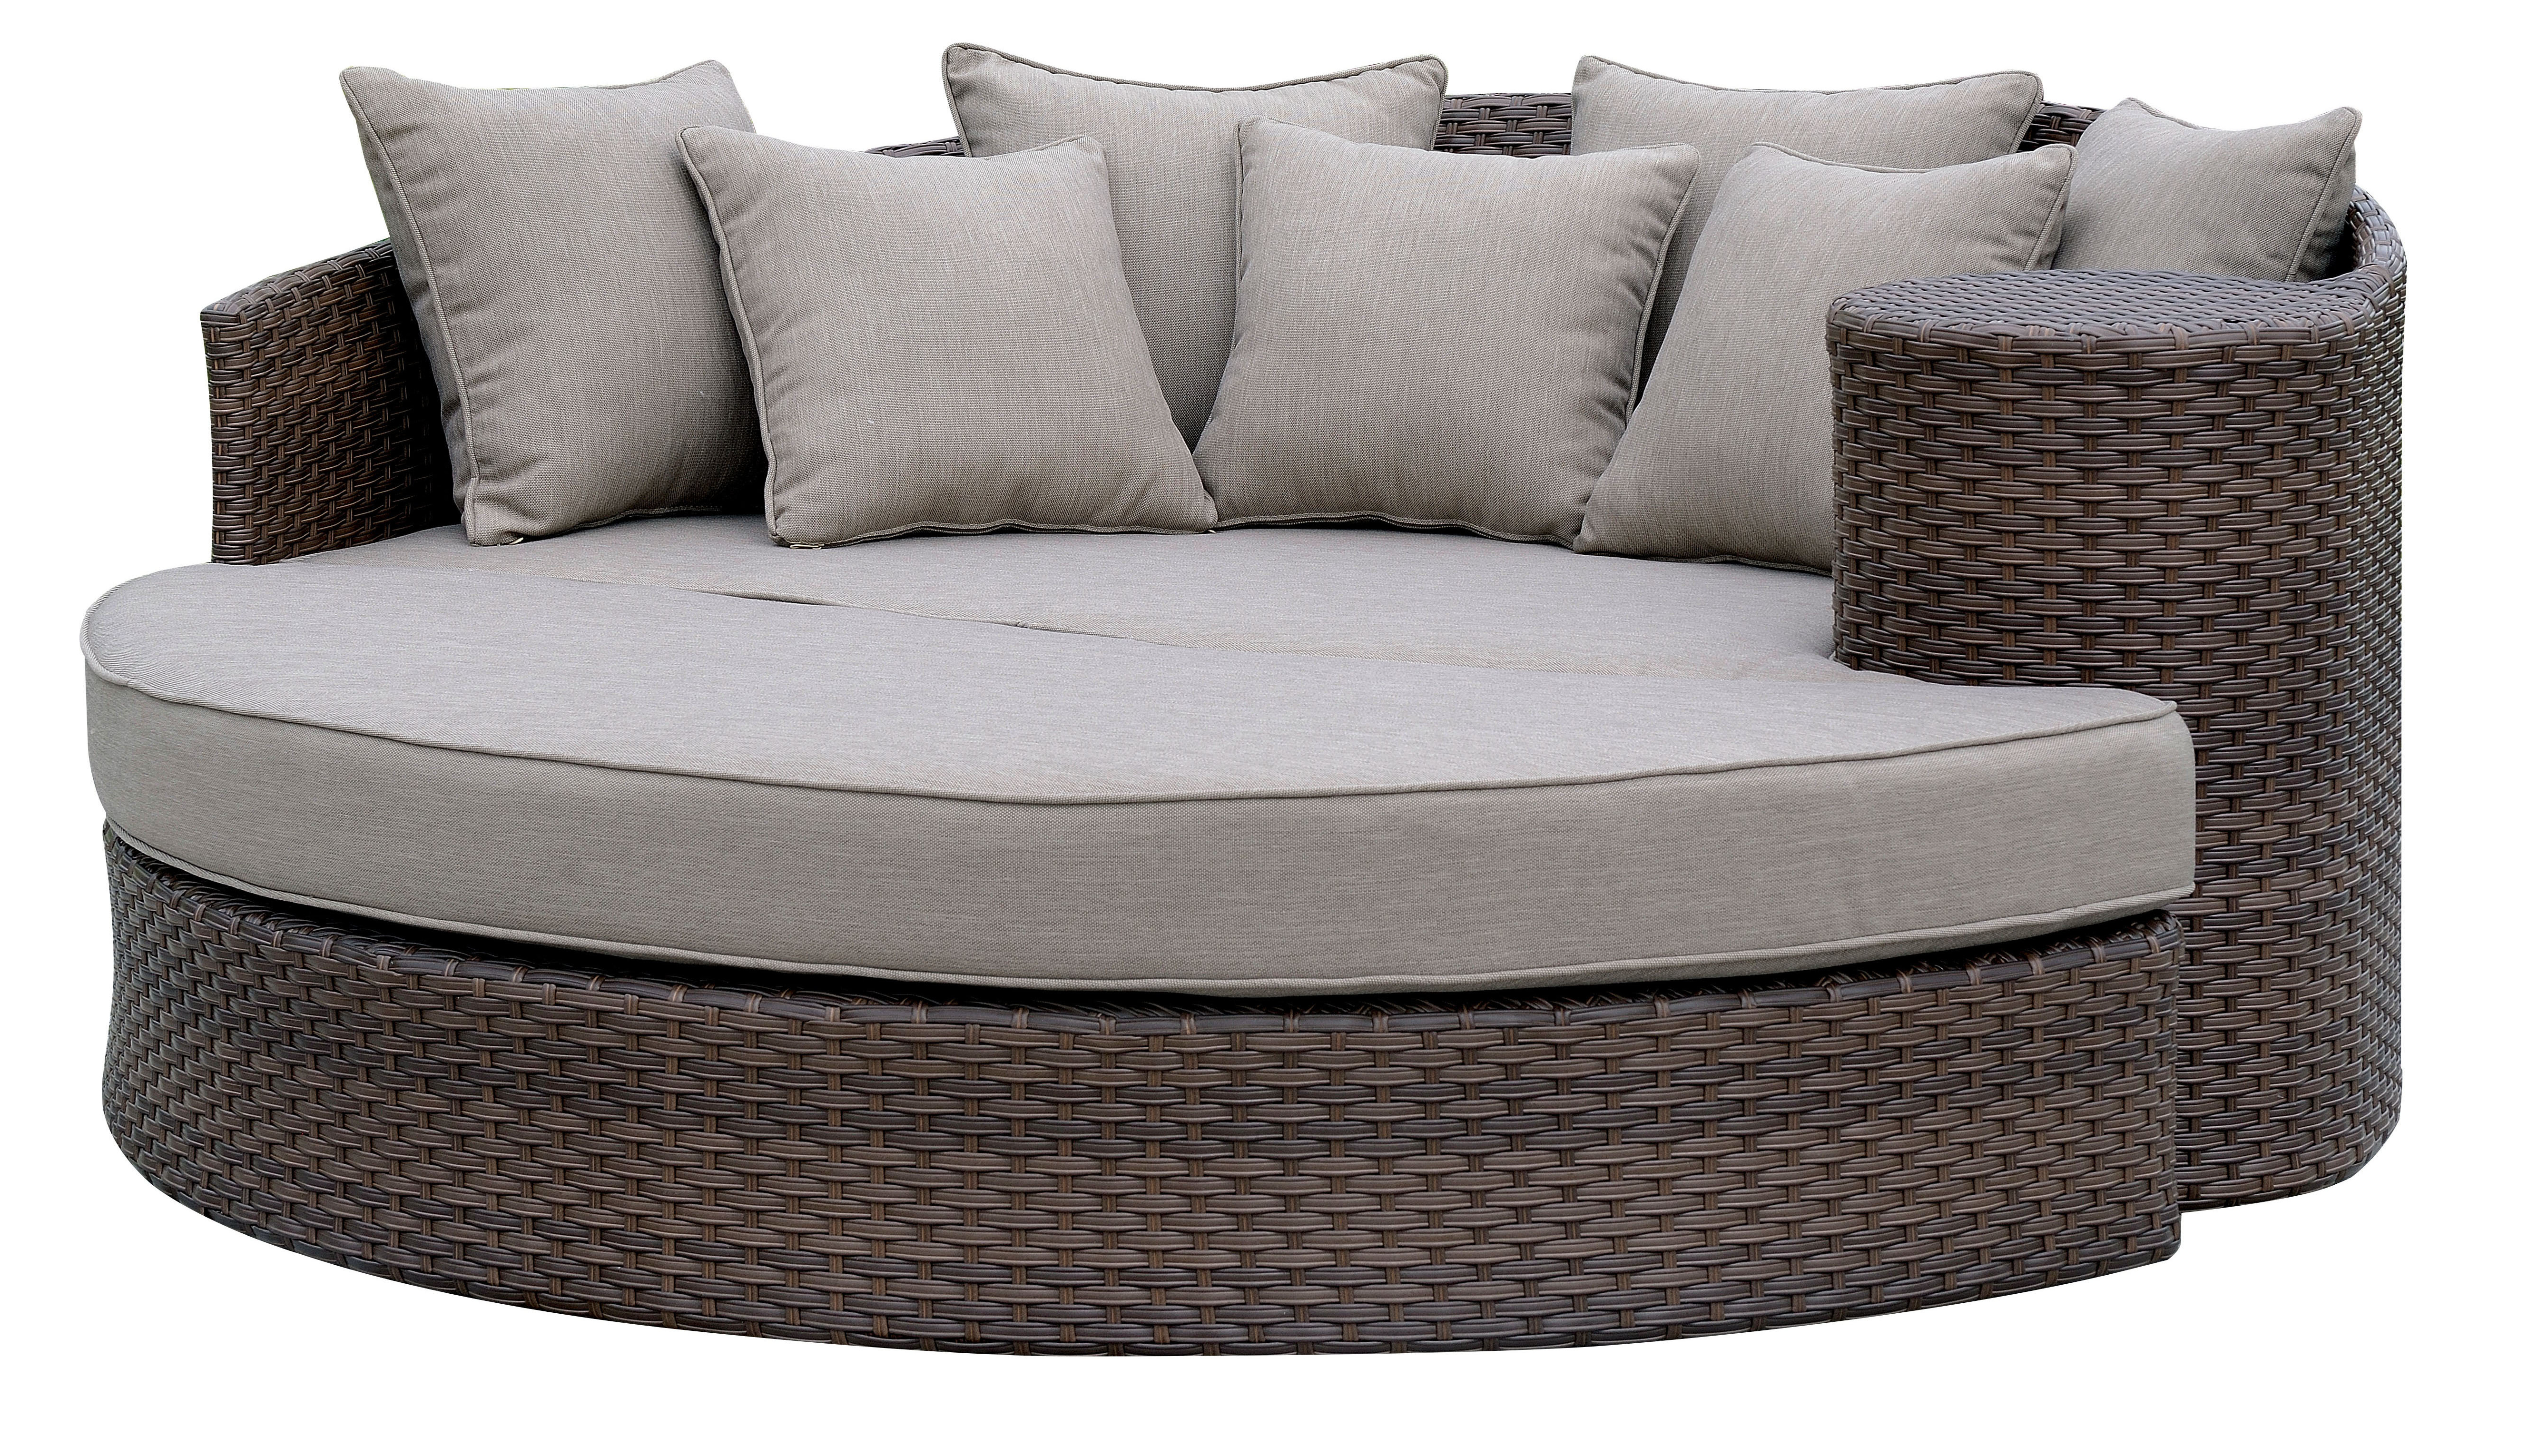 Whyte Contemporary Patio Daybed With Cushions Throughout Newest Falmouth Patio Daybeds With Cushions (View 19 of 20)